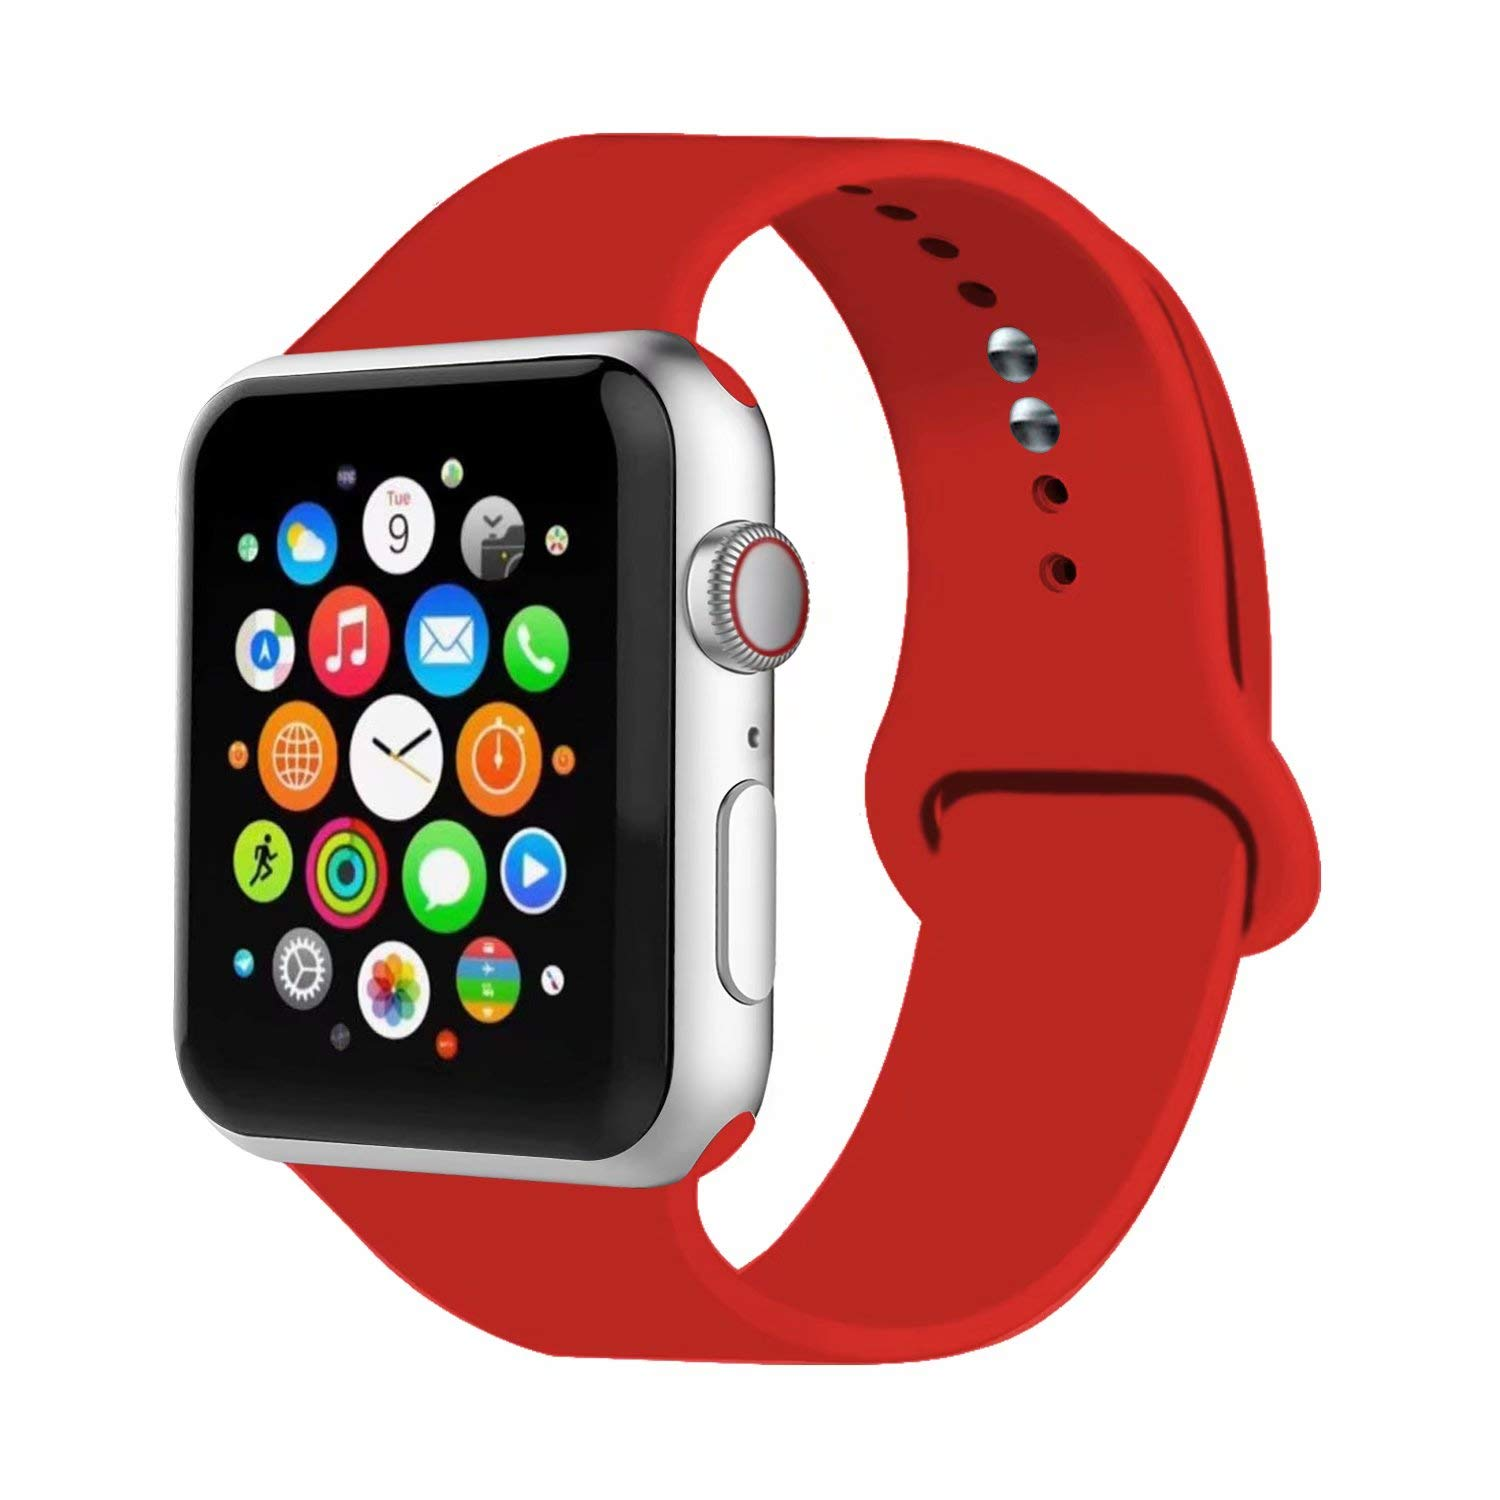 IYOU Sport Band Compatible with Apple Watch Band 38MM 42MM, Soft Silicone Replacement Sport Strap Compatible with Apple Watch Series 3/2/1, All Models More Colors Choose product image